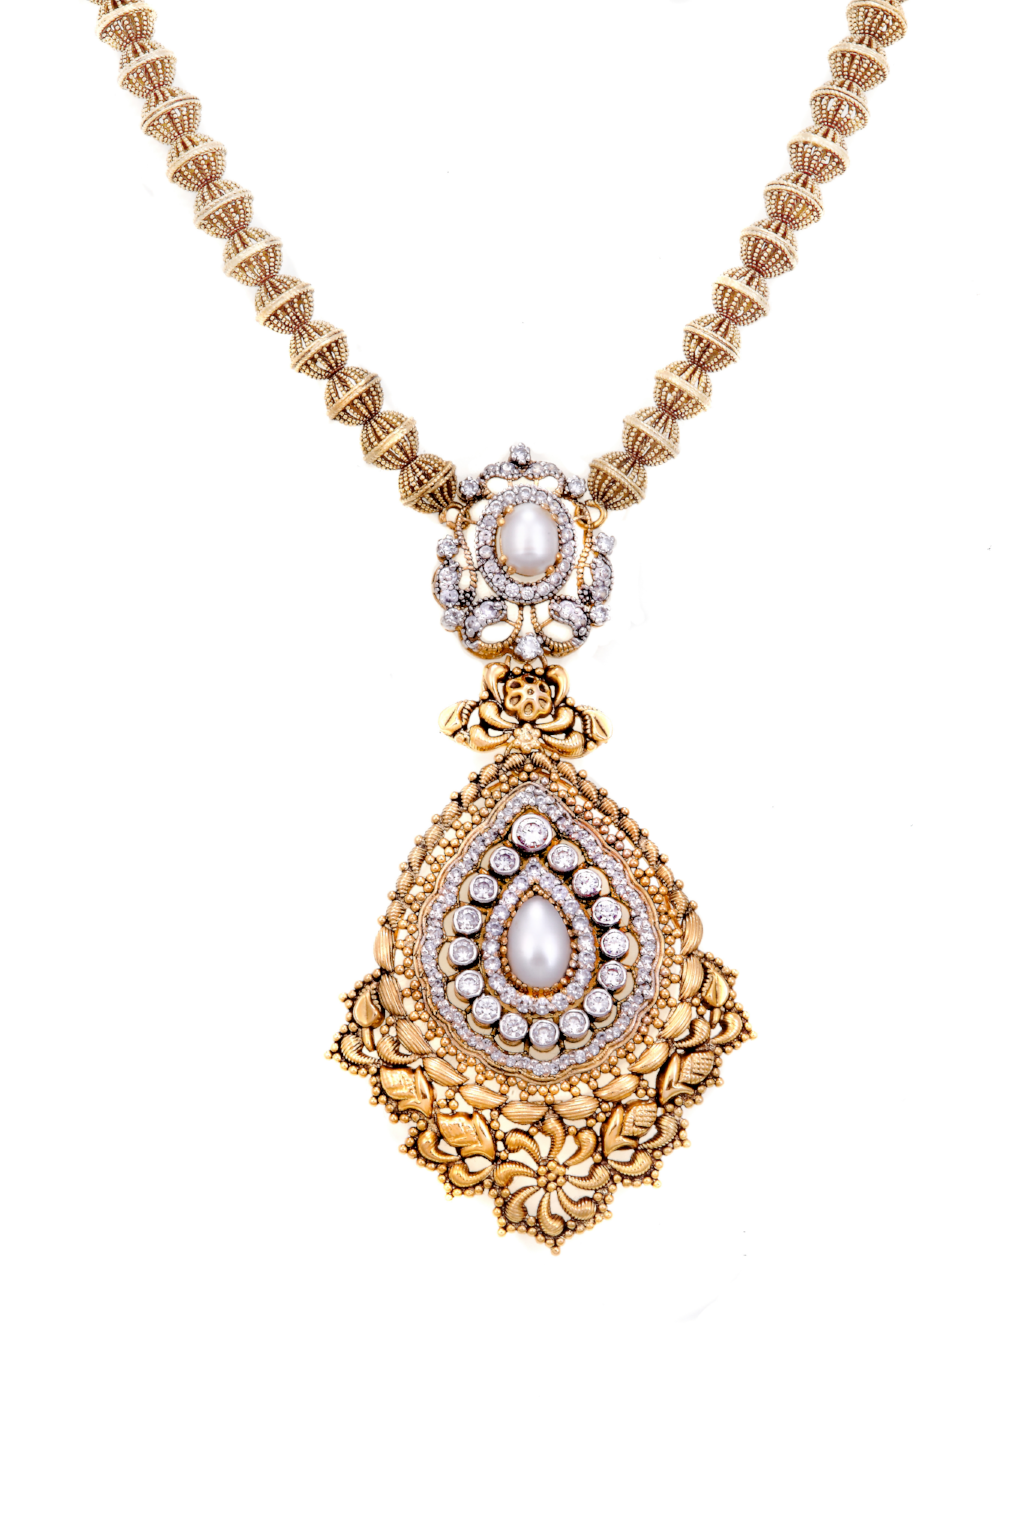 Handcrafted 22k gold necklace set with pearls and cubic zirconia, finished in antique polish.